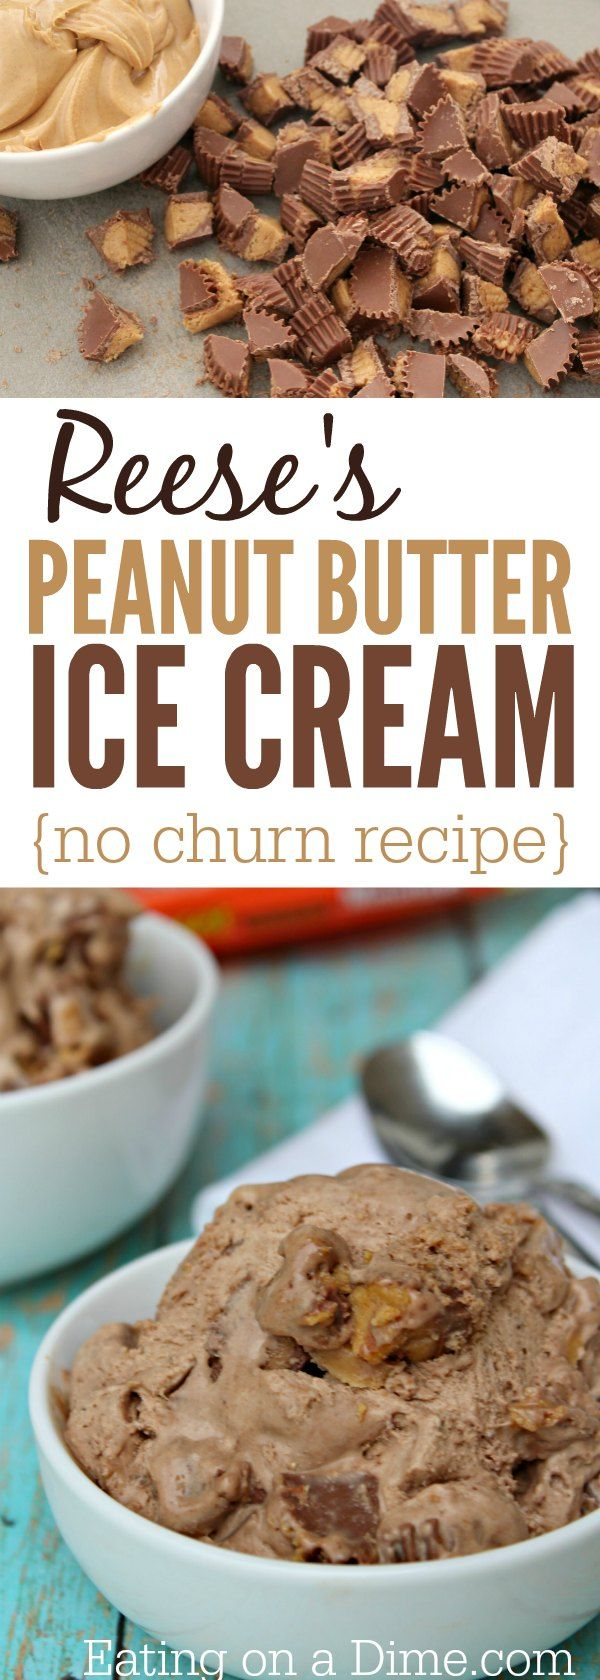 Reese's Peanut Butter Ice cream recipe - This reese's ice cream is delicious and easy to make because it is a no churn ice cream recipe.